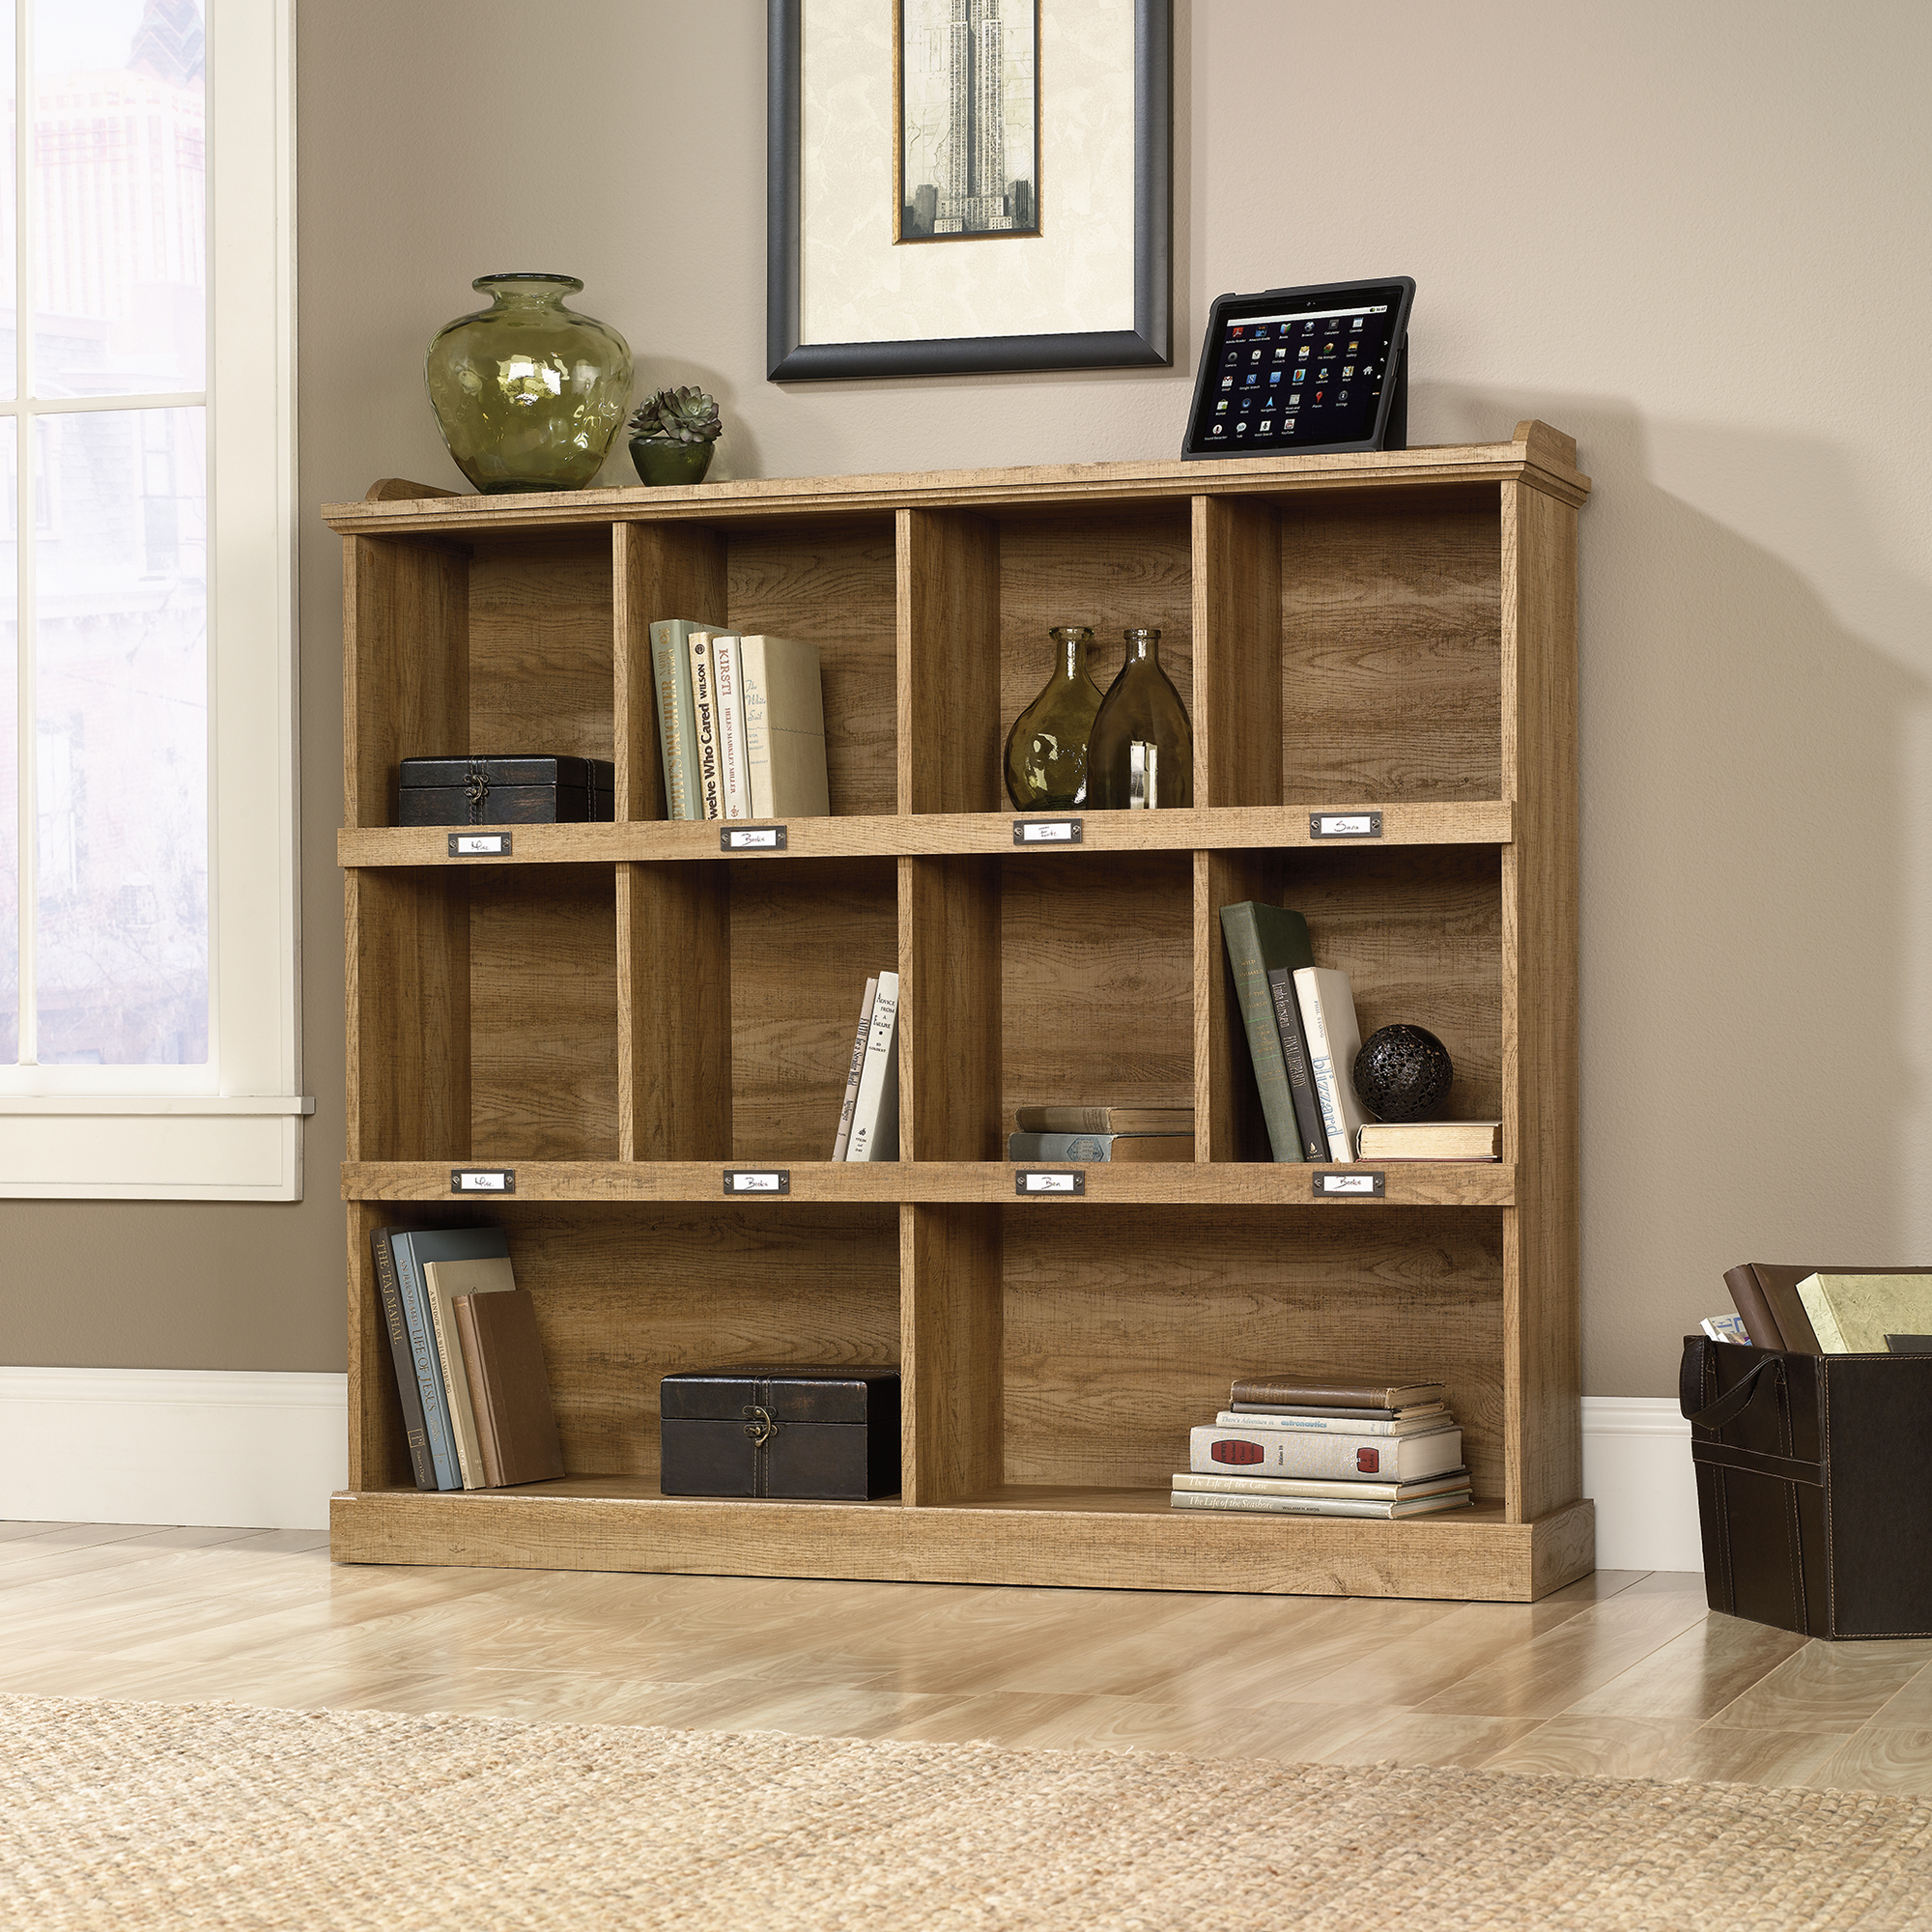 chic wooden bookcase by sauder furniture on wooden floor which matched with tan wall for living room decor ideas